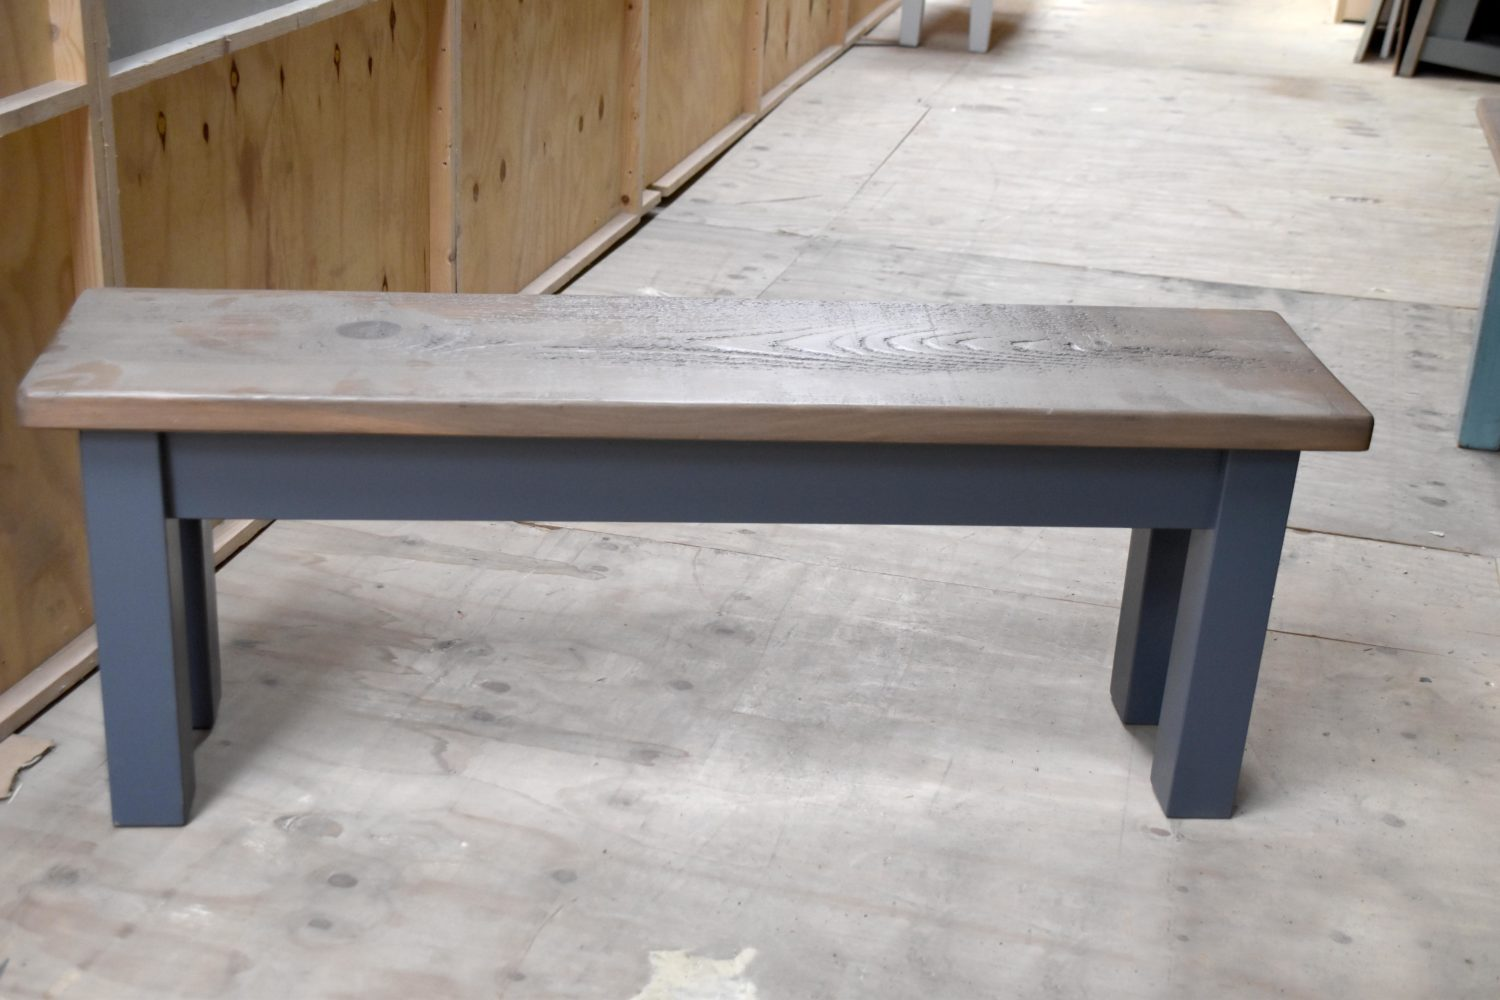 Square Leg Bench in the Mudd & Co factory sale 2020. Handcrafted kitchen and home furniture